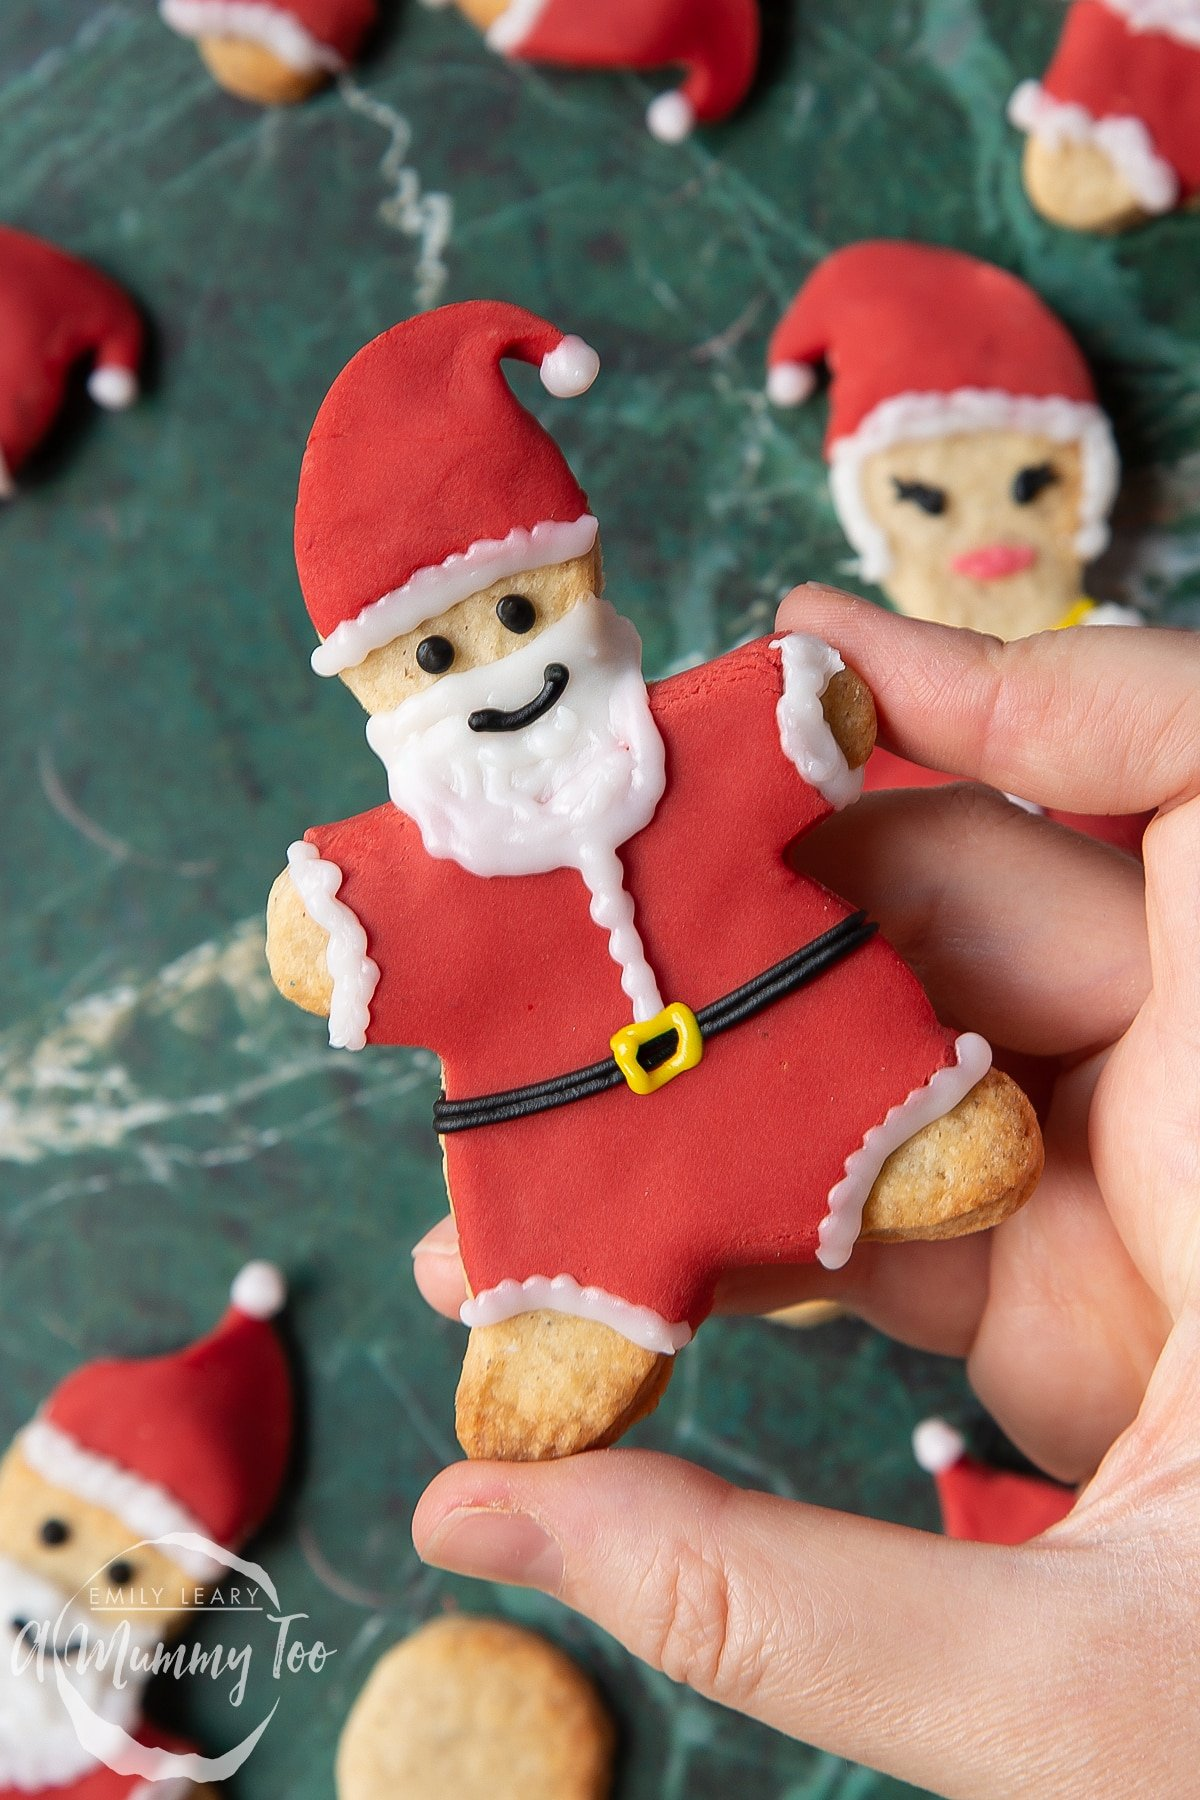 Hand holding a Father Christmas cookie on a green marble surface.